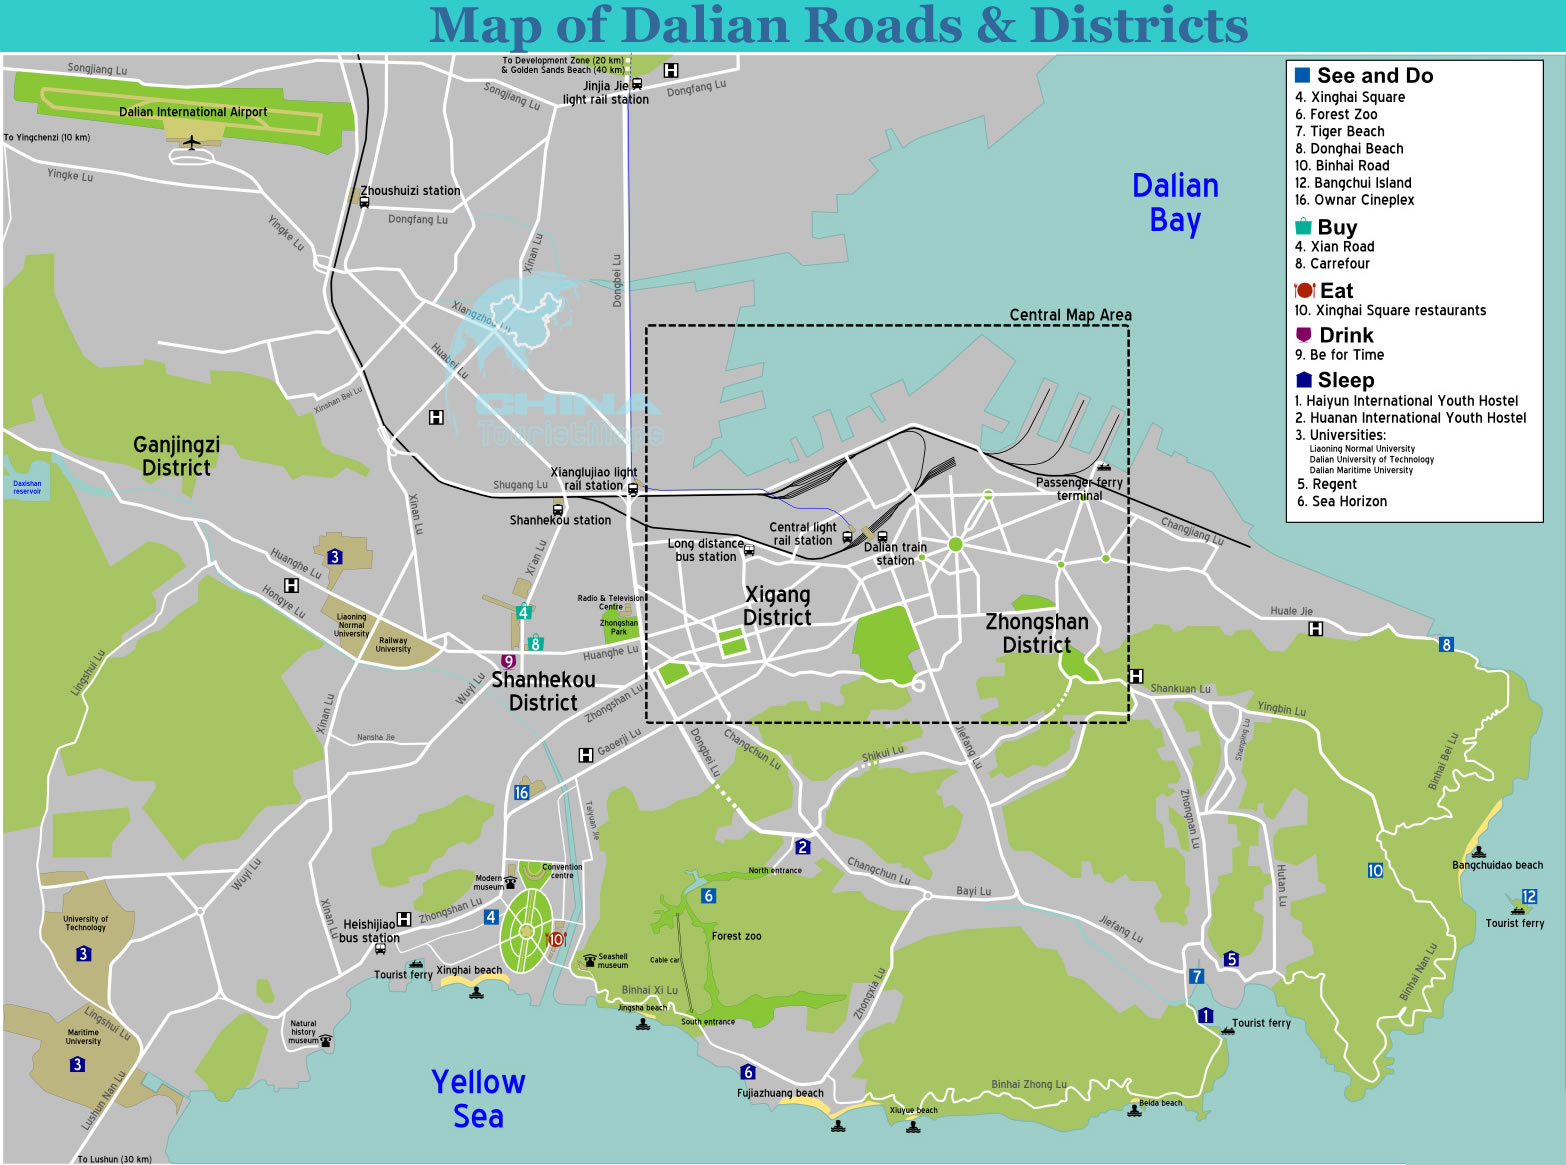 Travel to Dalian Roads and Diatricts Map Buy Eat Drink sleep Map